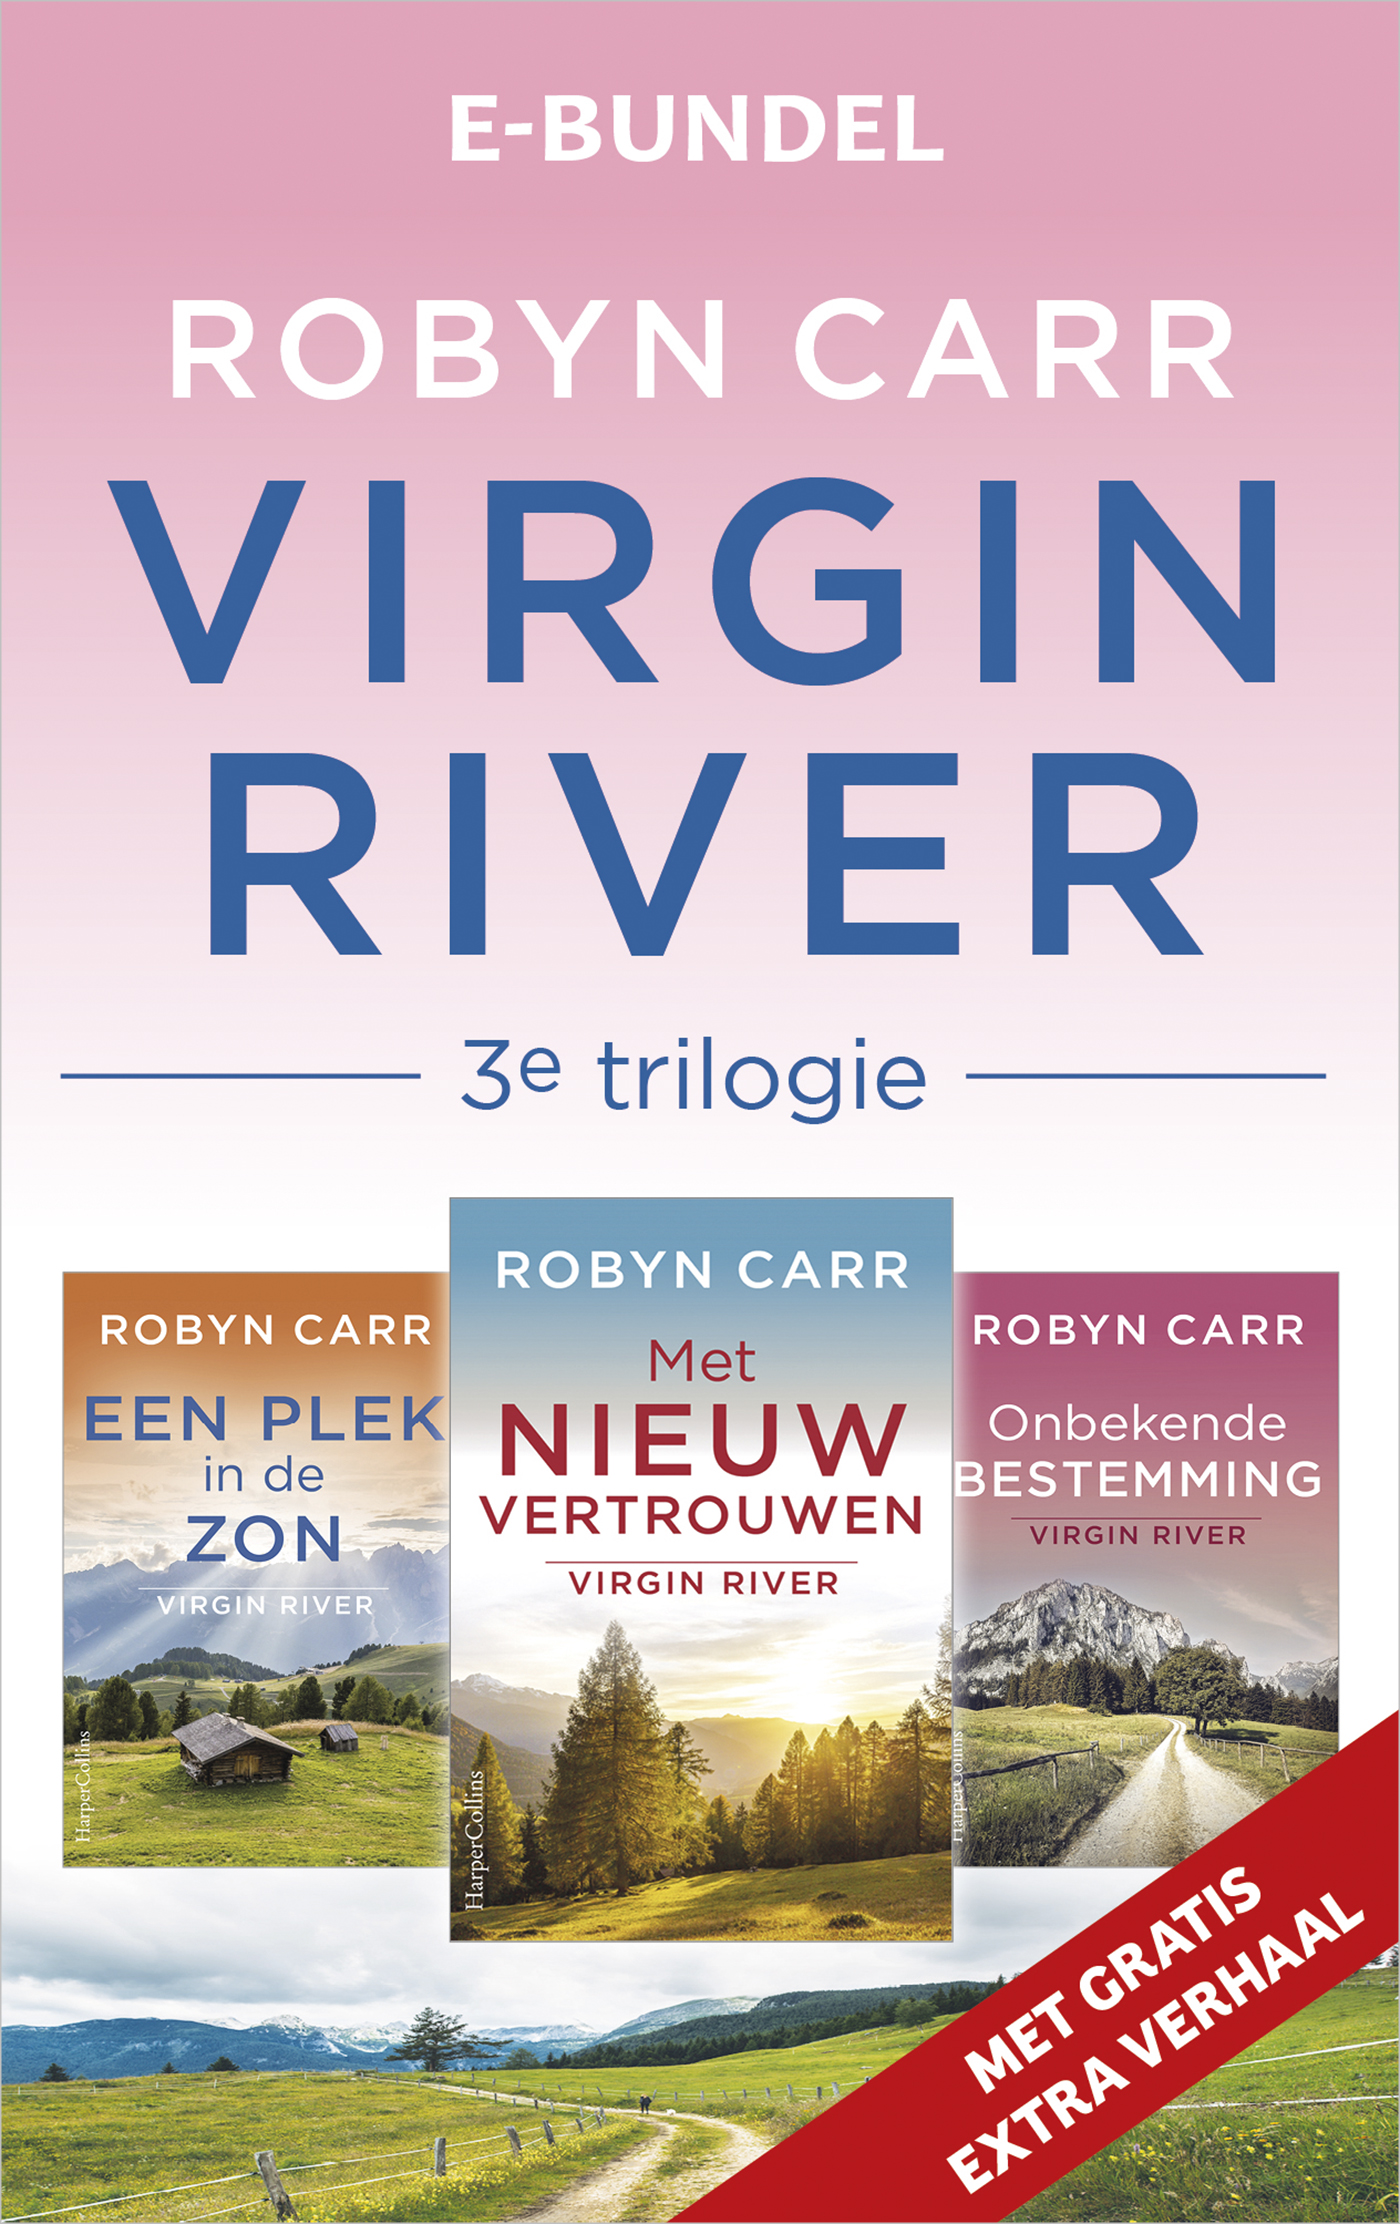 Virgin River 3e trilogie